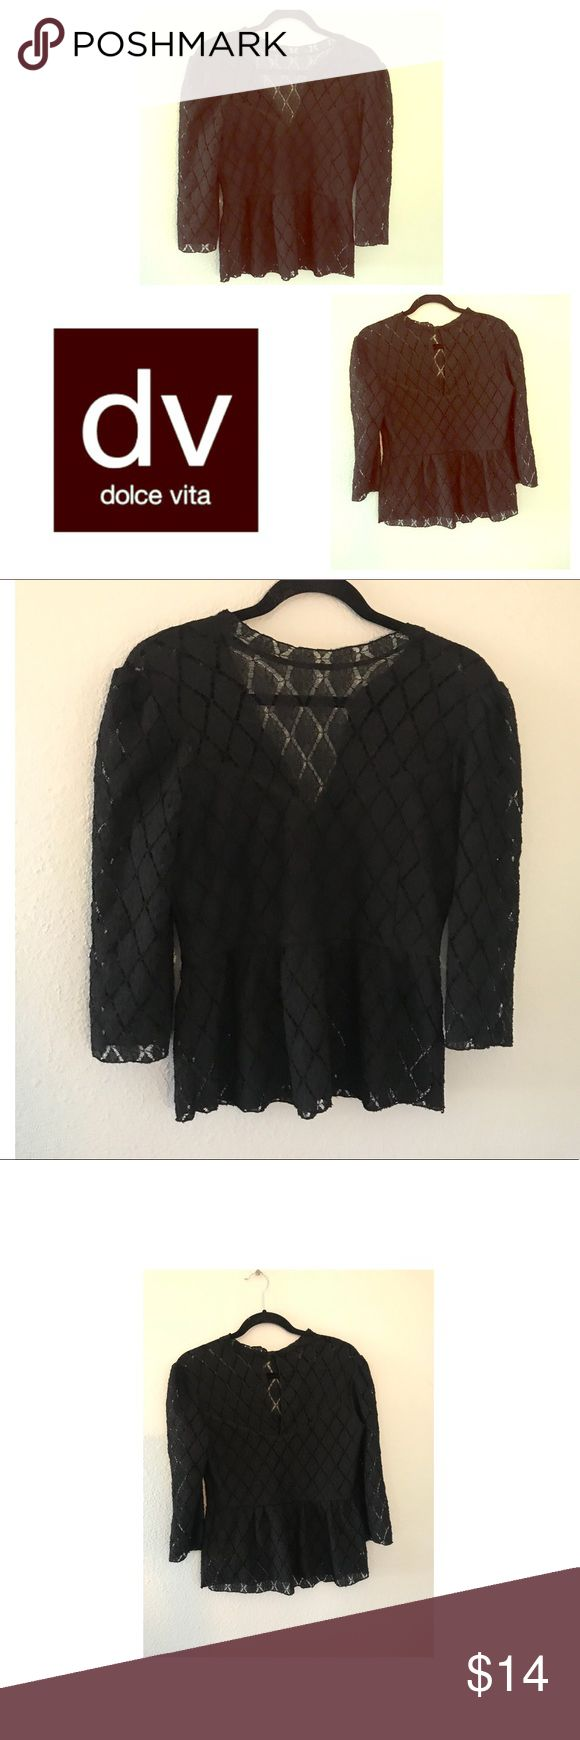 """Black Peplum Lace Sexy Vintage Blouse Top I'm good condition! This top fits amazing! Super Slimming. DV Dolce Vita Brand. Black lace Peplum sheer sexy 3/4 Sleeve High Neck Victorian Vintage Blouse Top Shirt. Perfect for date night. Looks good with or without a shirt underneath it. Length is about 23"""" from shoulder to bottom. Bust is about 17"""" wide. Top rated seller, fast shipping, bundle for the best deals! DV by Dolce Vita Tops Blouses"""